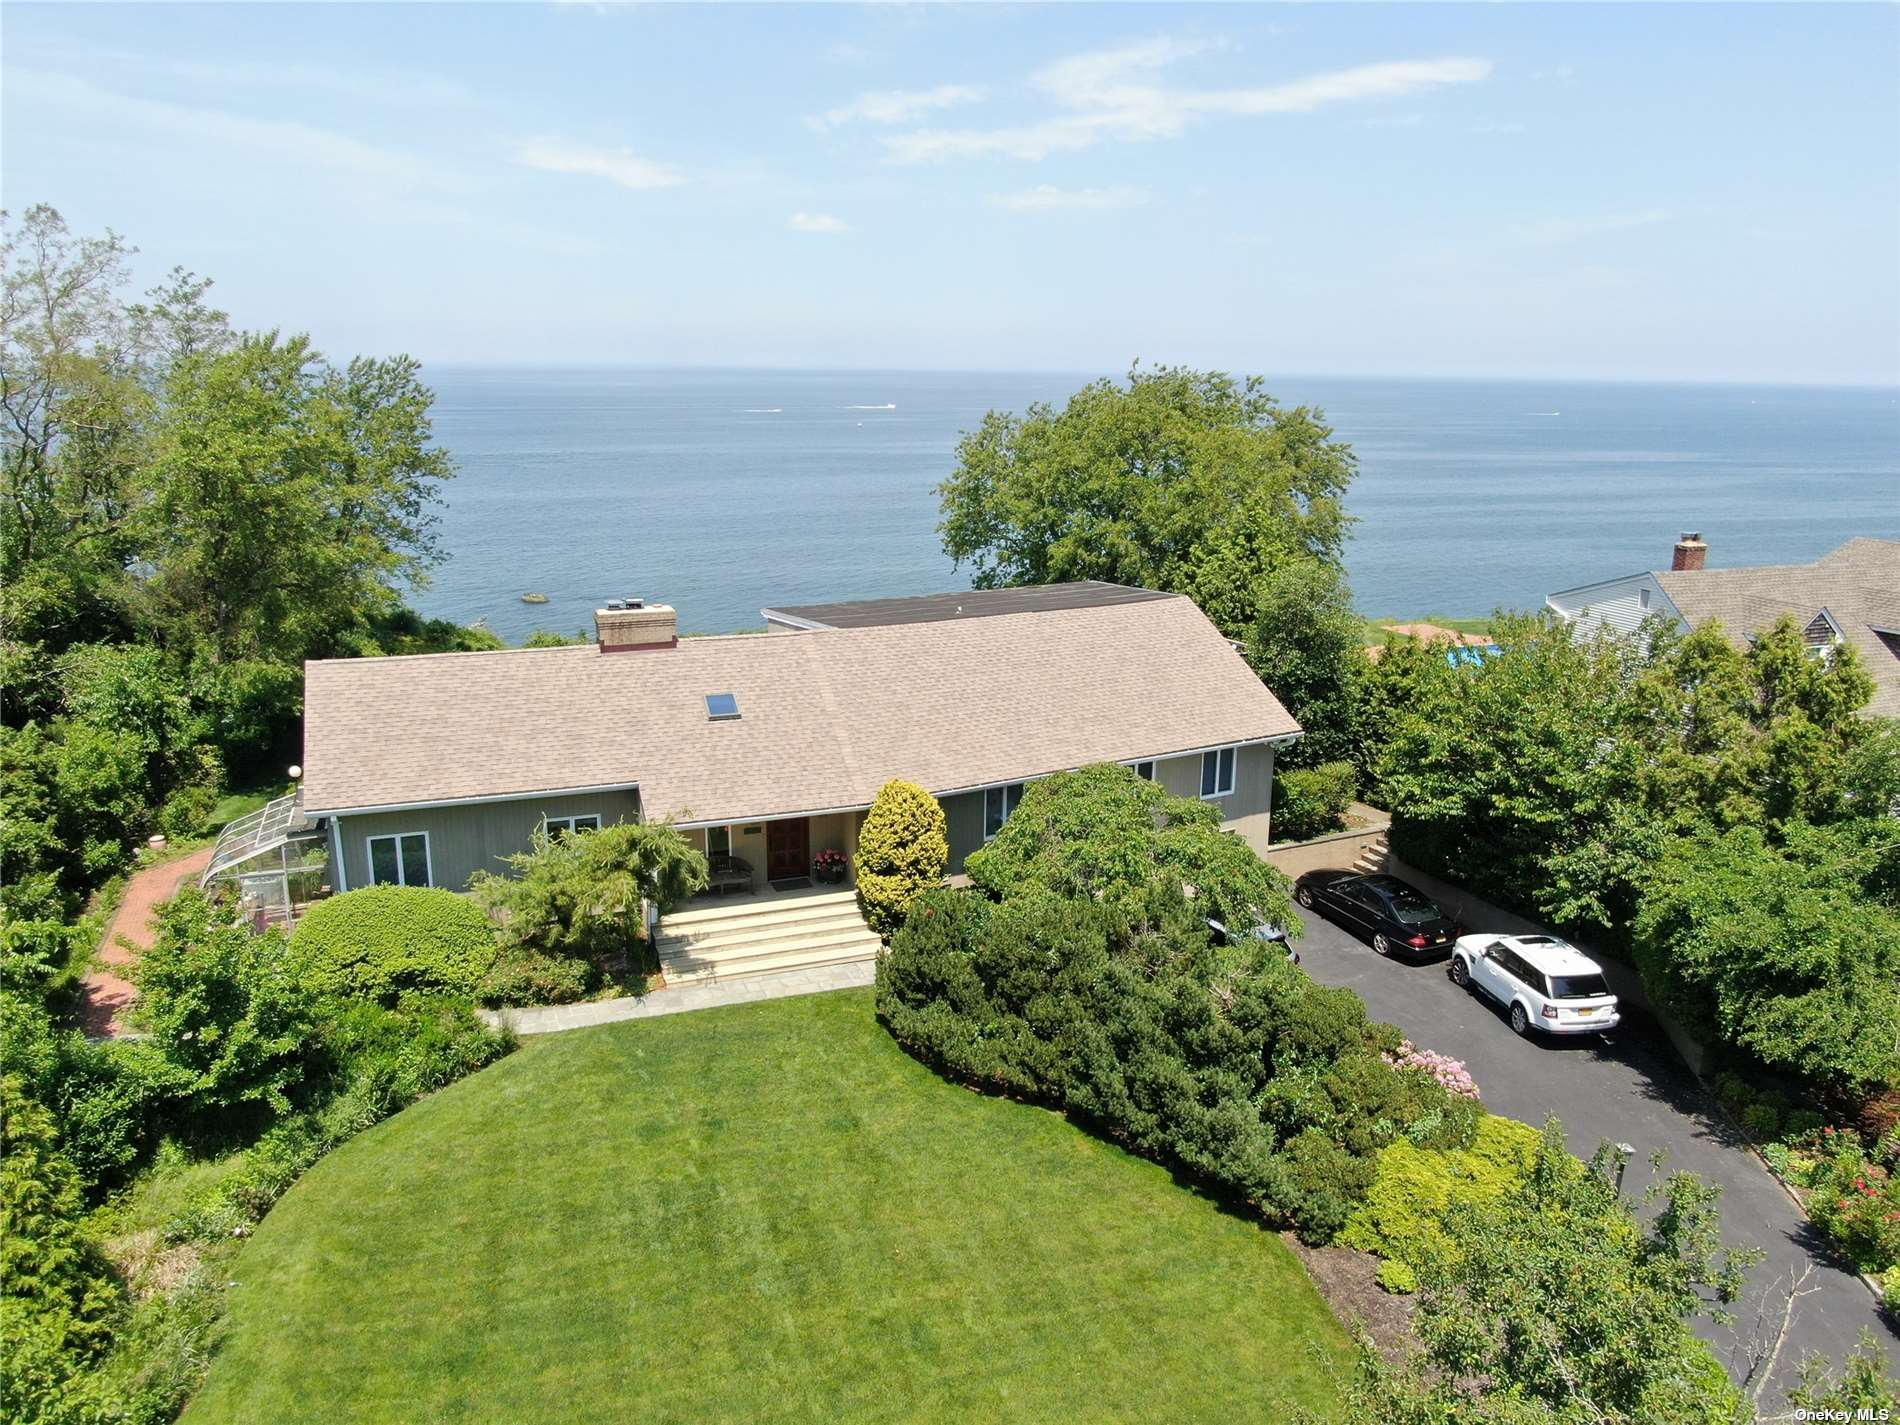 A seaside oasis. This gorgeous home has breath taking views of Long Island Sound. Plenty of windows throughout engulf the home in natural light & showcase the beautiful views.  Vaulted, wood beamed ceilings, a floor to ceiling brick fireplace & large archways in the living room give the home a grand feel. The large eat-in-kitchen has a continuation of the beamed ceilings, dark wood cabinets, Iron stone flooring, & SS appliances providing a Mediterranean feel.  Leading from the living space to the rear deck is an expansive IG Pool & beach. Wake up to a beautiful view in your spacious master bedroom featuring two WIKs & private en-suite. This home was expanded w/ a 2nd story guests quarters or home office complete w/ a living room, kitchen, bedroom & bath allows you to keep your guests close while both enjoying your privacy. Private beach rights stairs border the property to the west. A 22KW generator & a new sea bulkhead in 2020,  bluff is fully intact securing this home for many years.